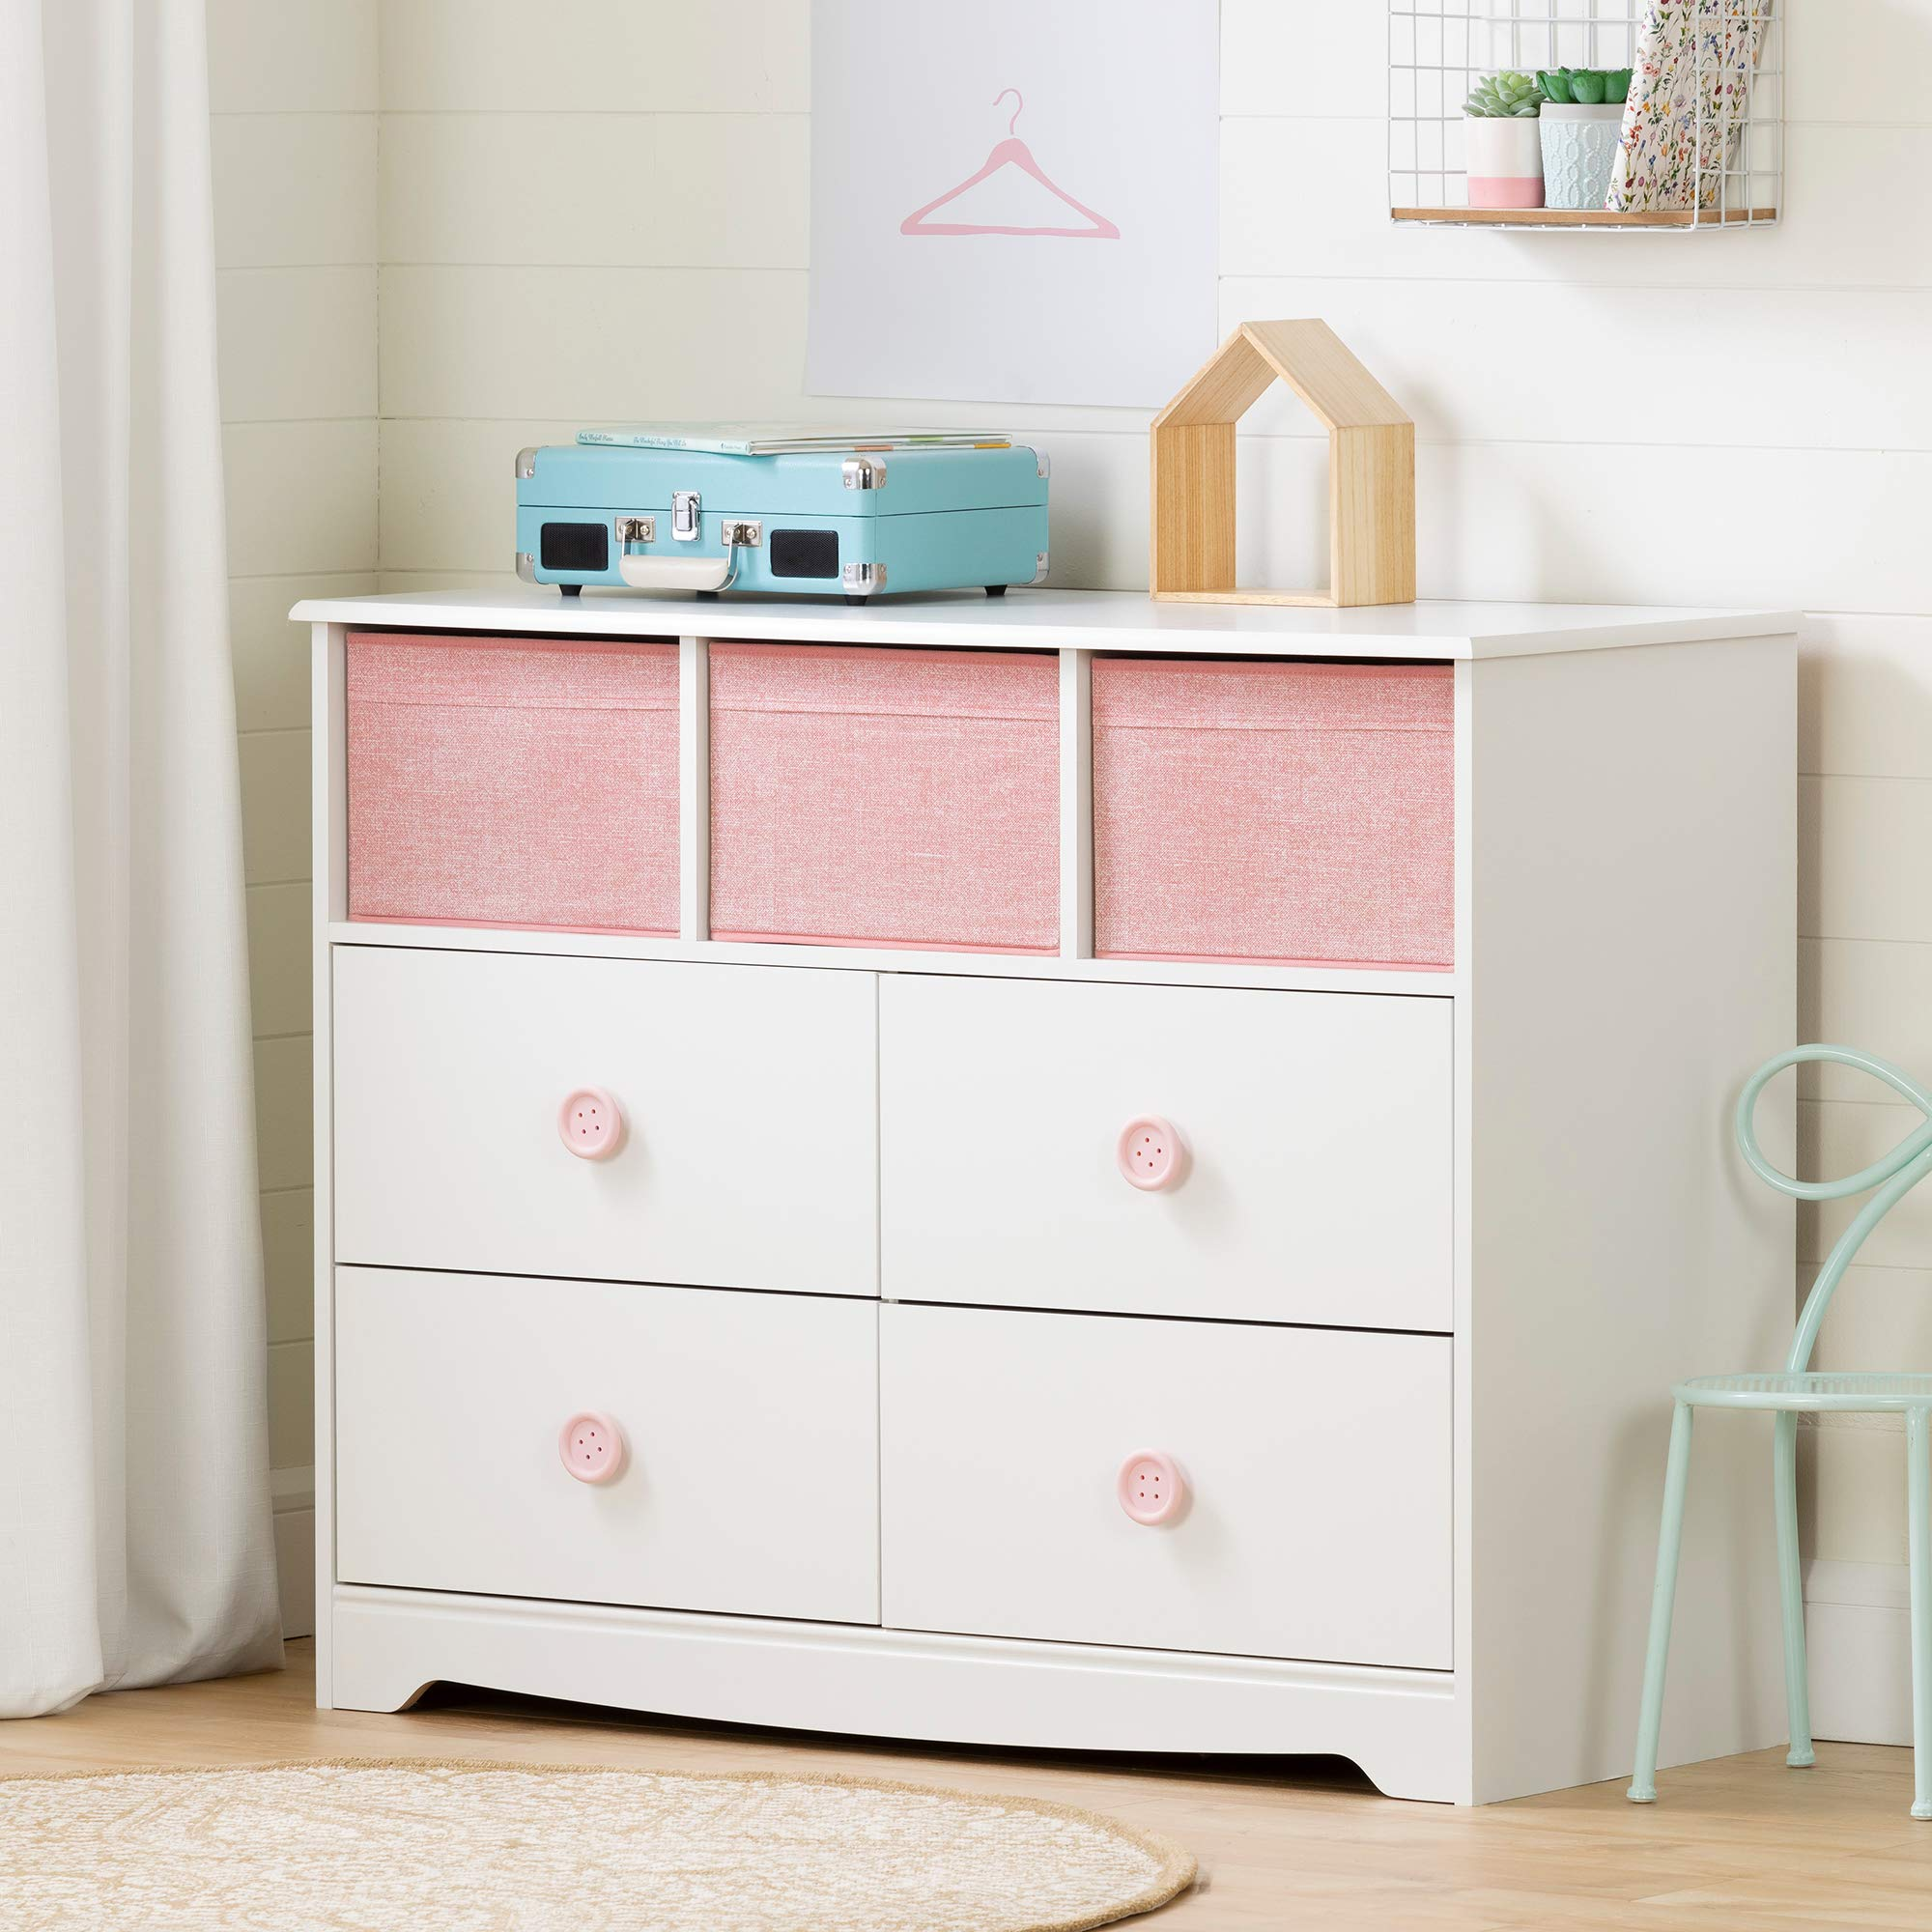 South Shore Sweet Piggy 4-Drawer Dresser with Baskets, White and Pink by South Shore